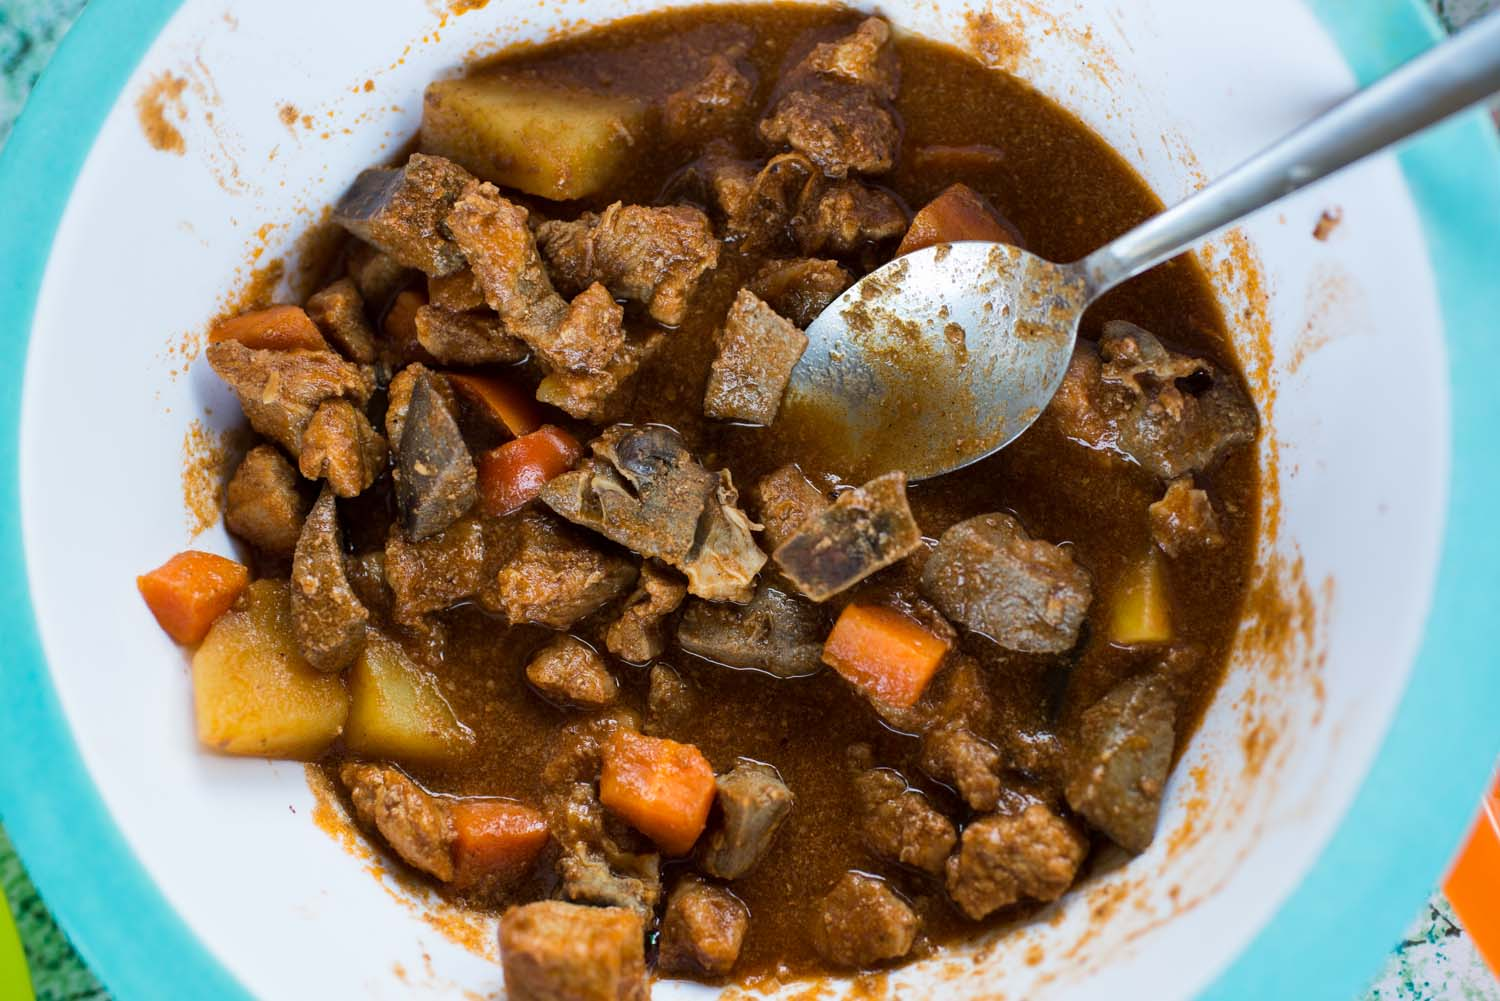 Stew made from homegrown vegetables and animals